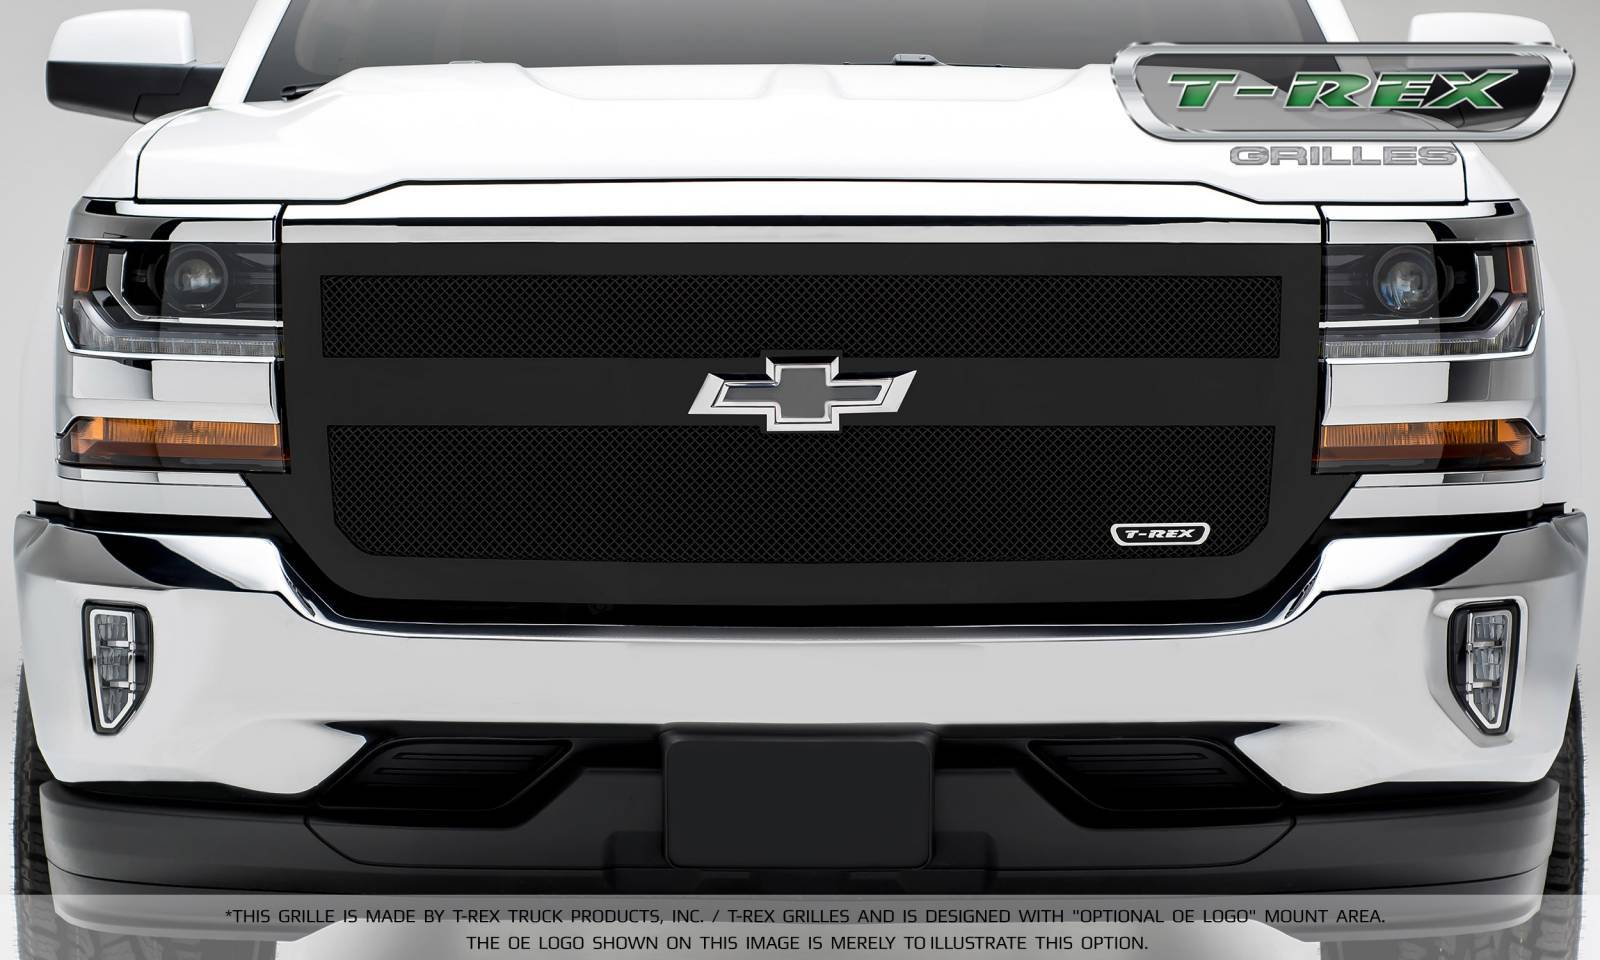 T-REX Chevrolet Silverado 1500 Upper Class Mesh Grille, Black Powder Coated, 1 Bar Design, Main Grille Replacement - Pt # 51131